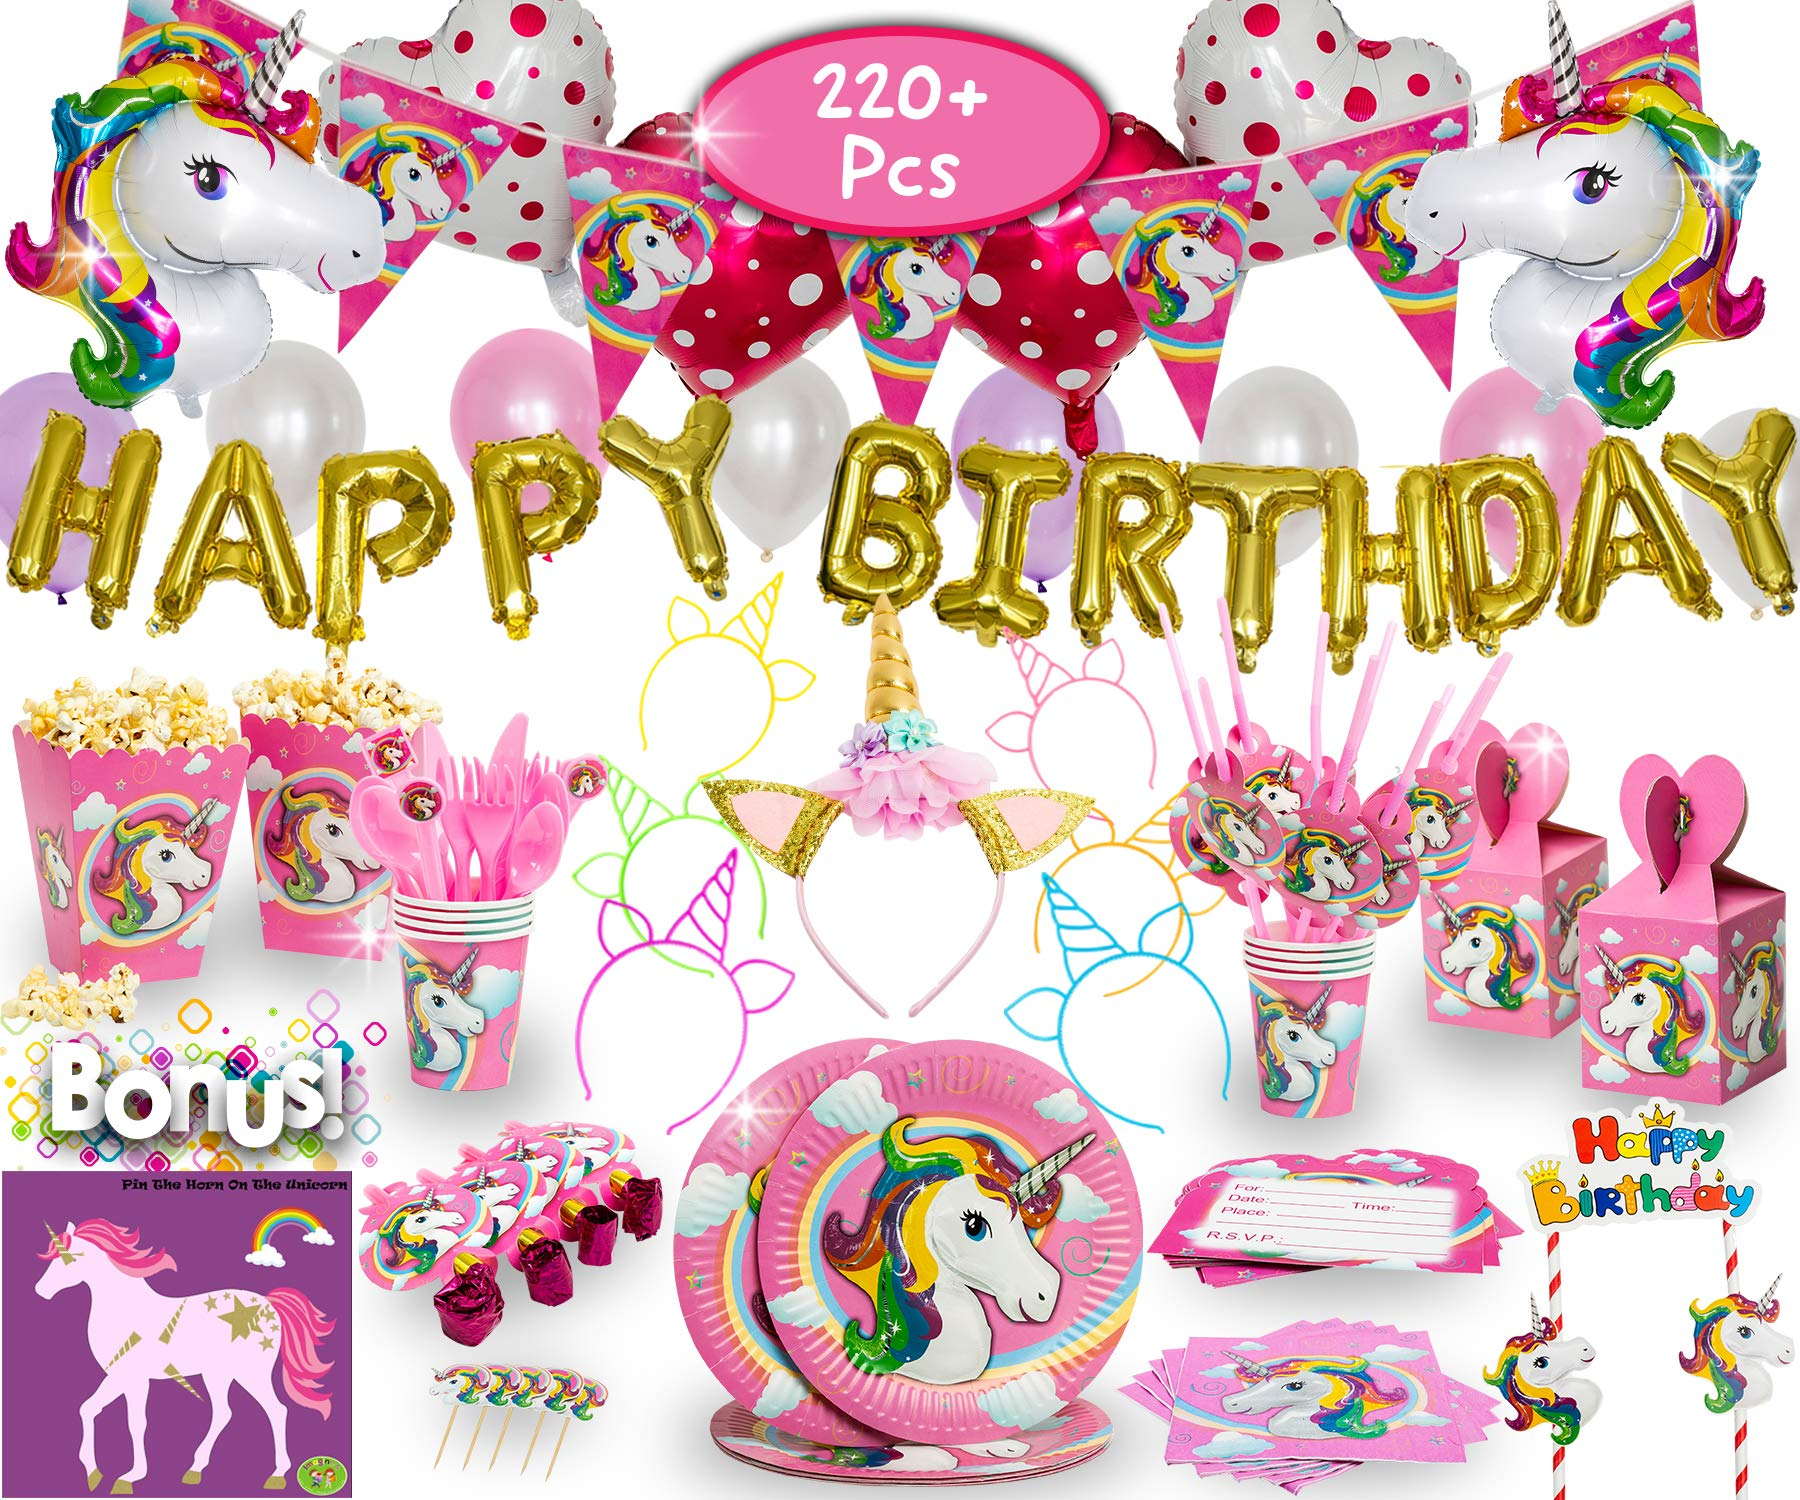 Imagine's Complete Unicorn Party Supplies – 220+ Piece Rainbow Girls Birthday Supplies Pack with Unicorn Balloons… 3